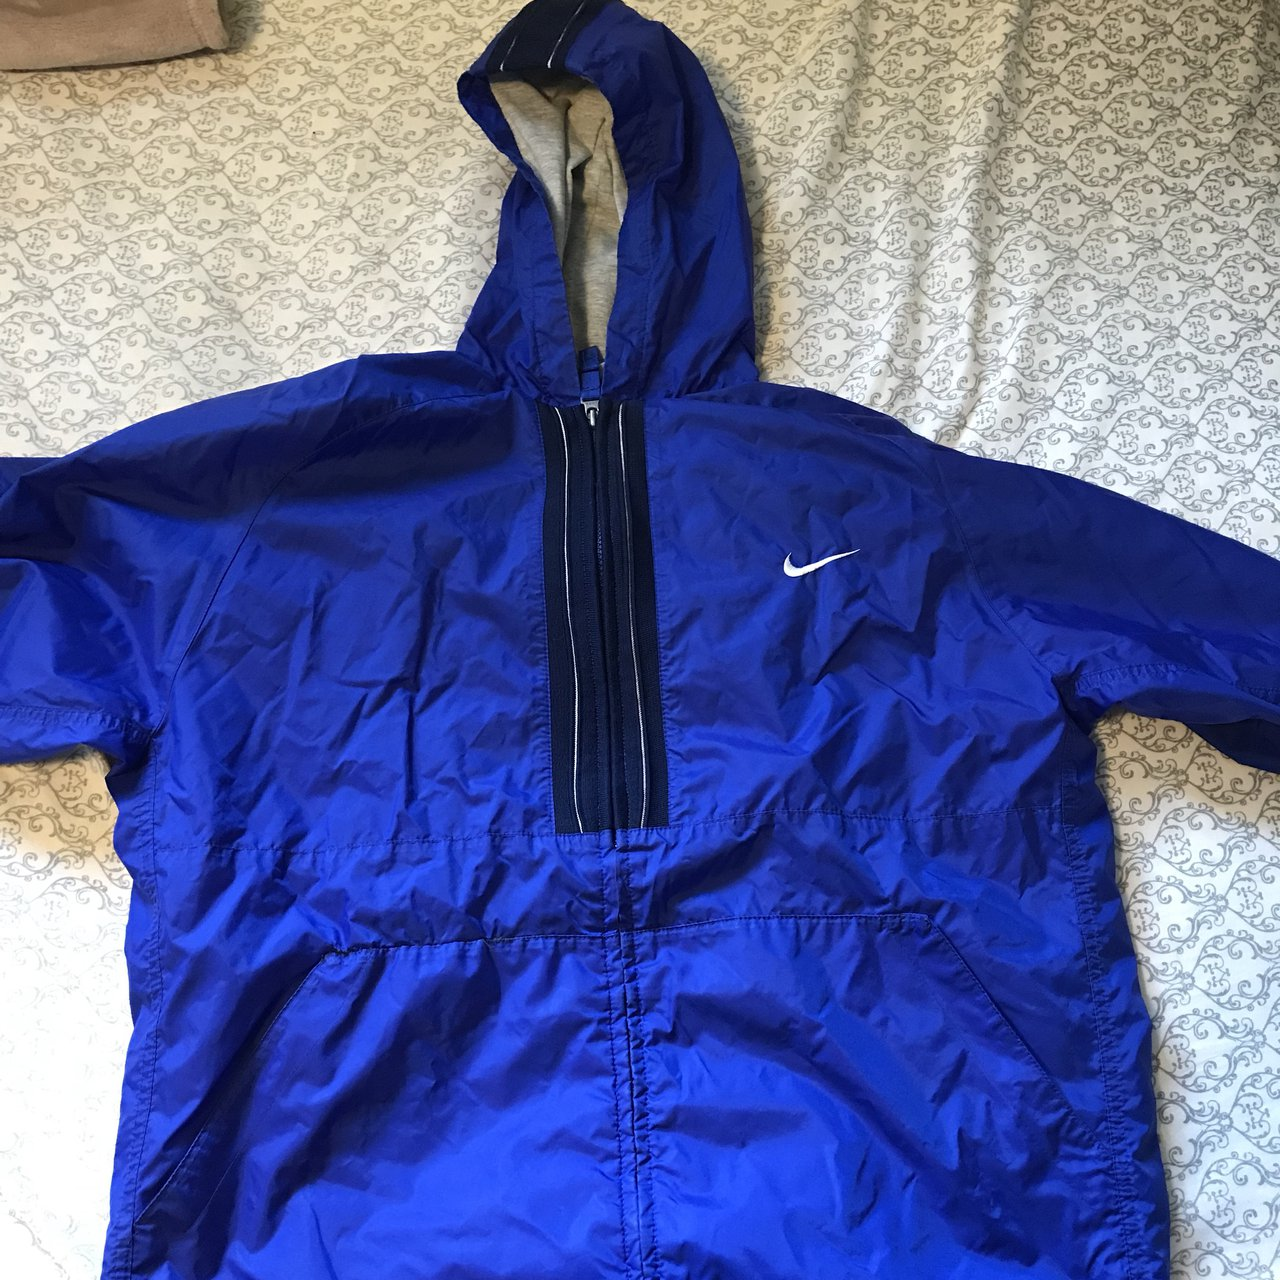 a7103af861ab  kailimiabrooks. last year. United States. Vintage royal blue Nike  windbreaker ...